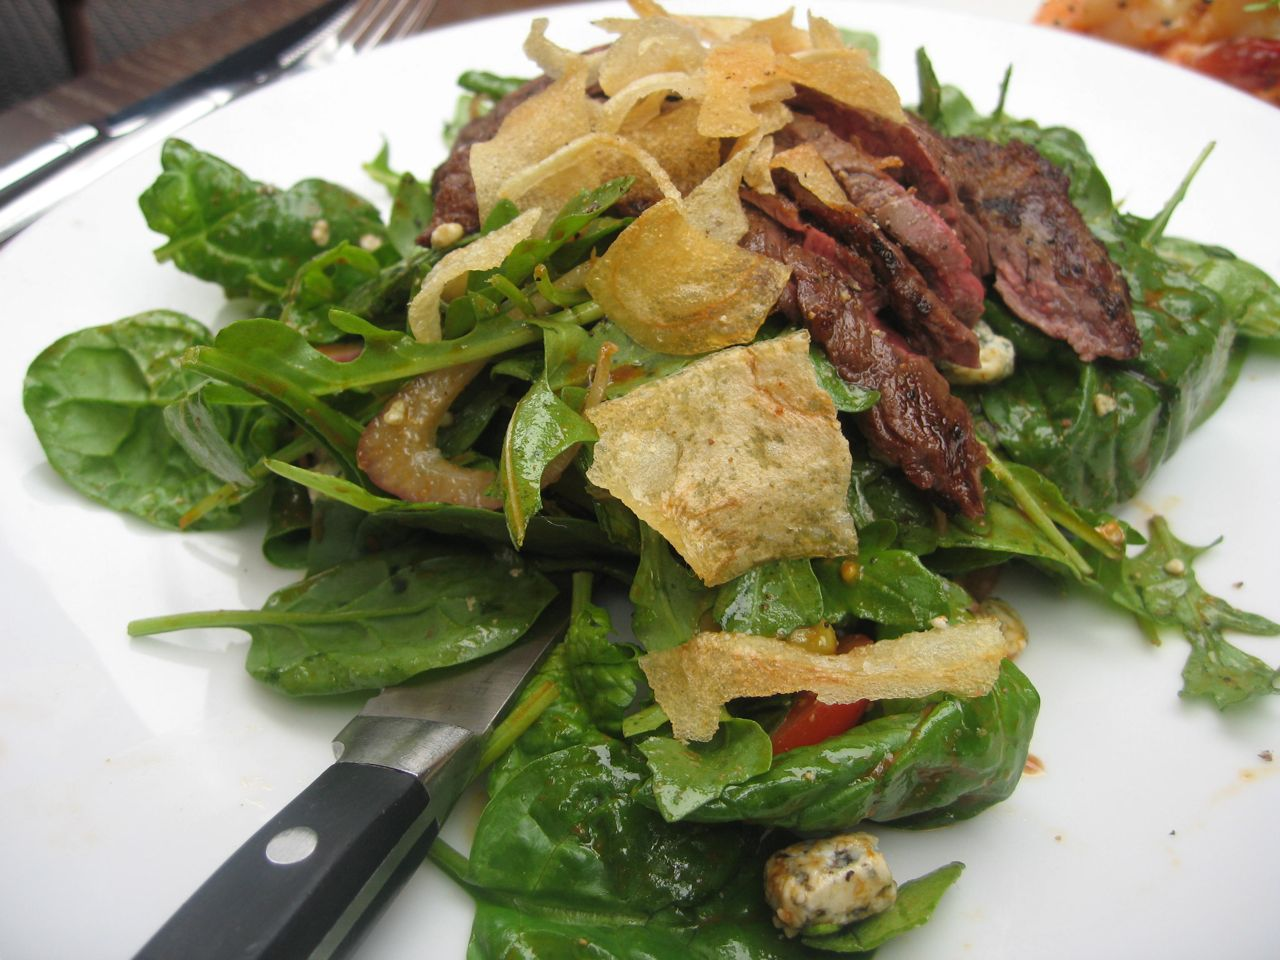 Steak salad at Basil